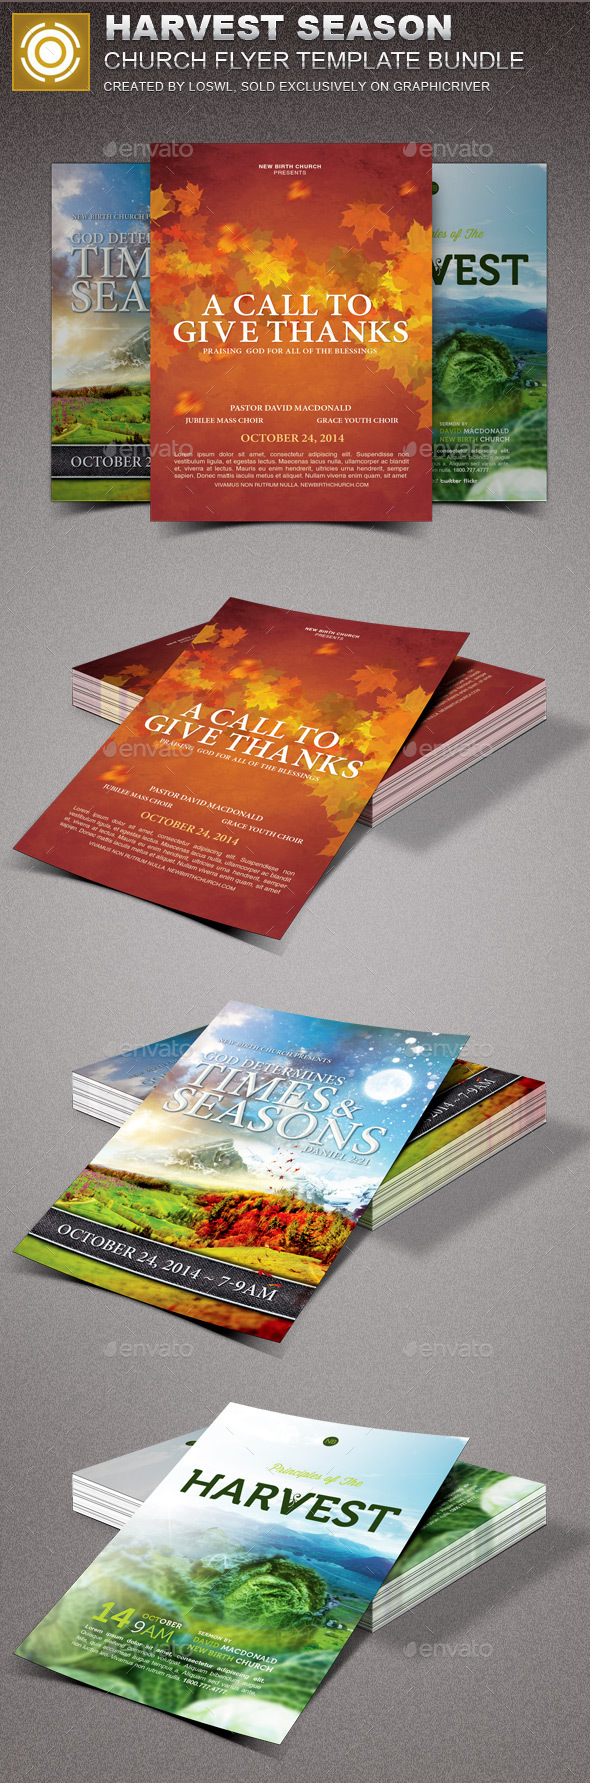 Harvest Season Church Flyer Template Bundle - Church Flyers